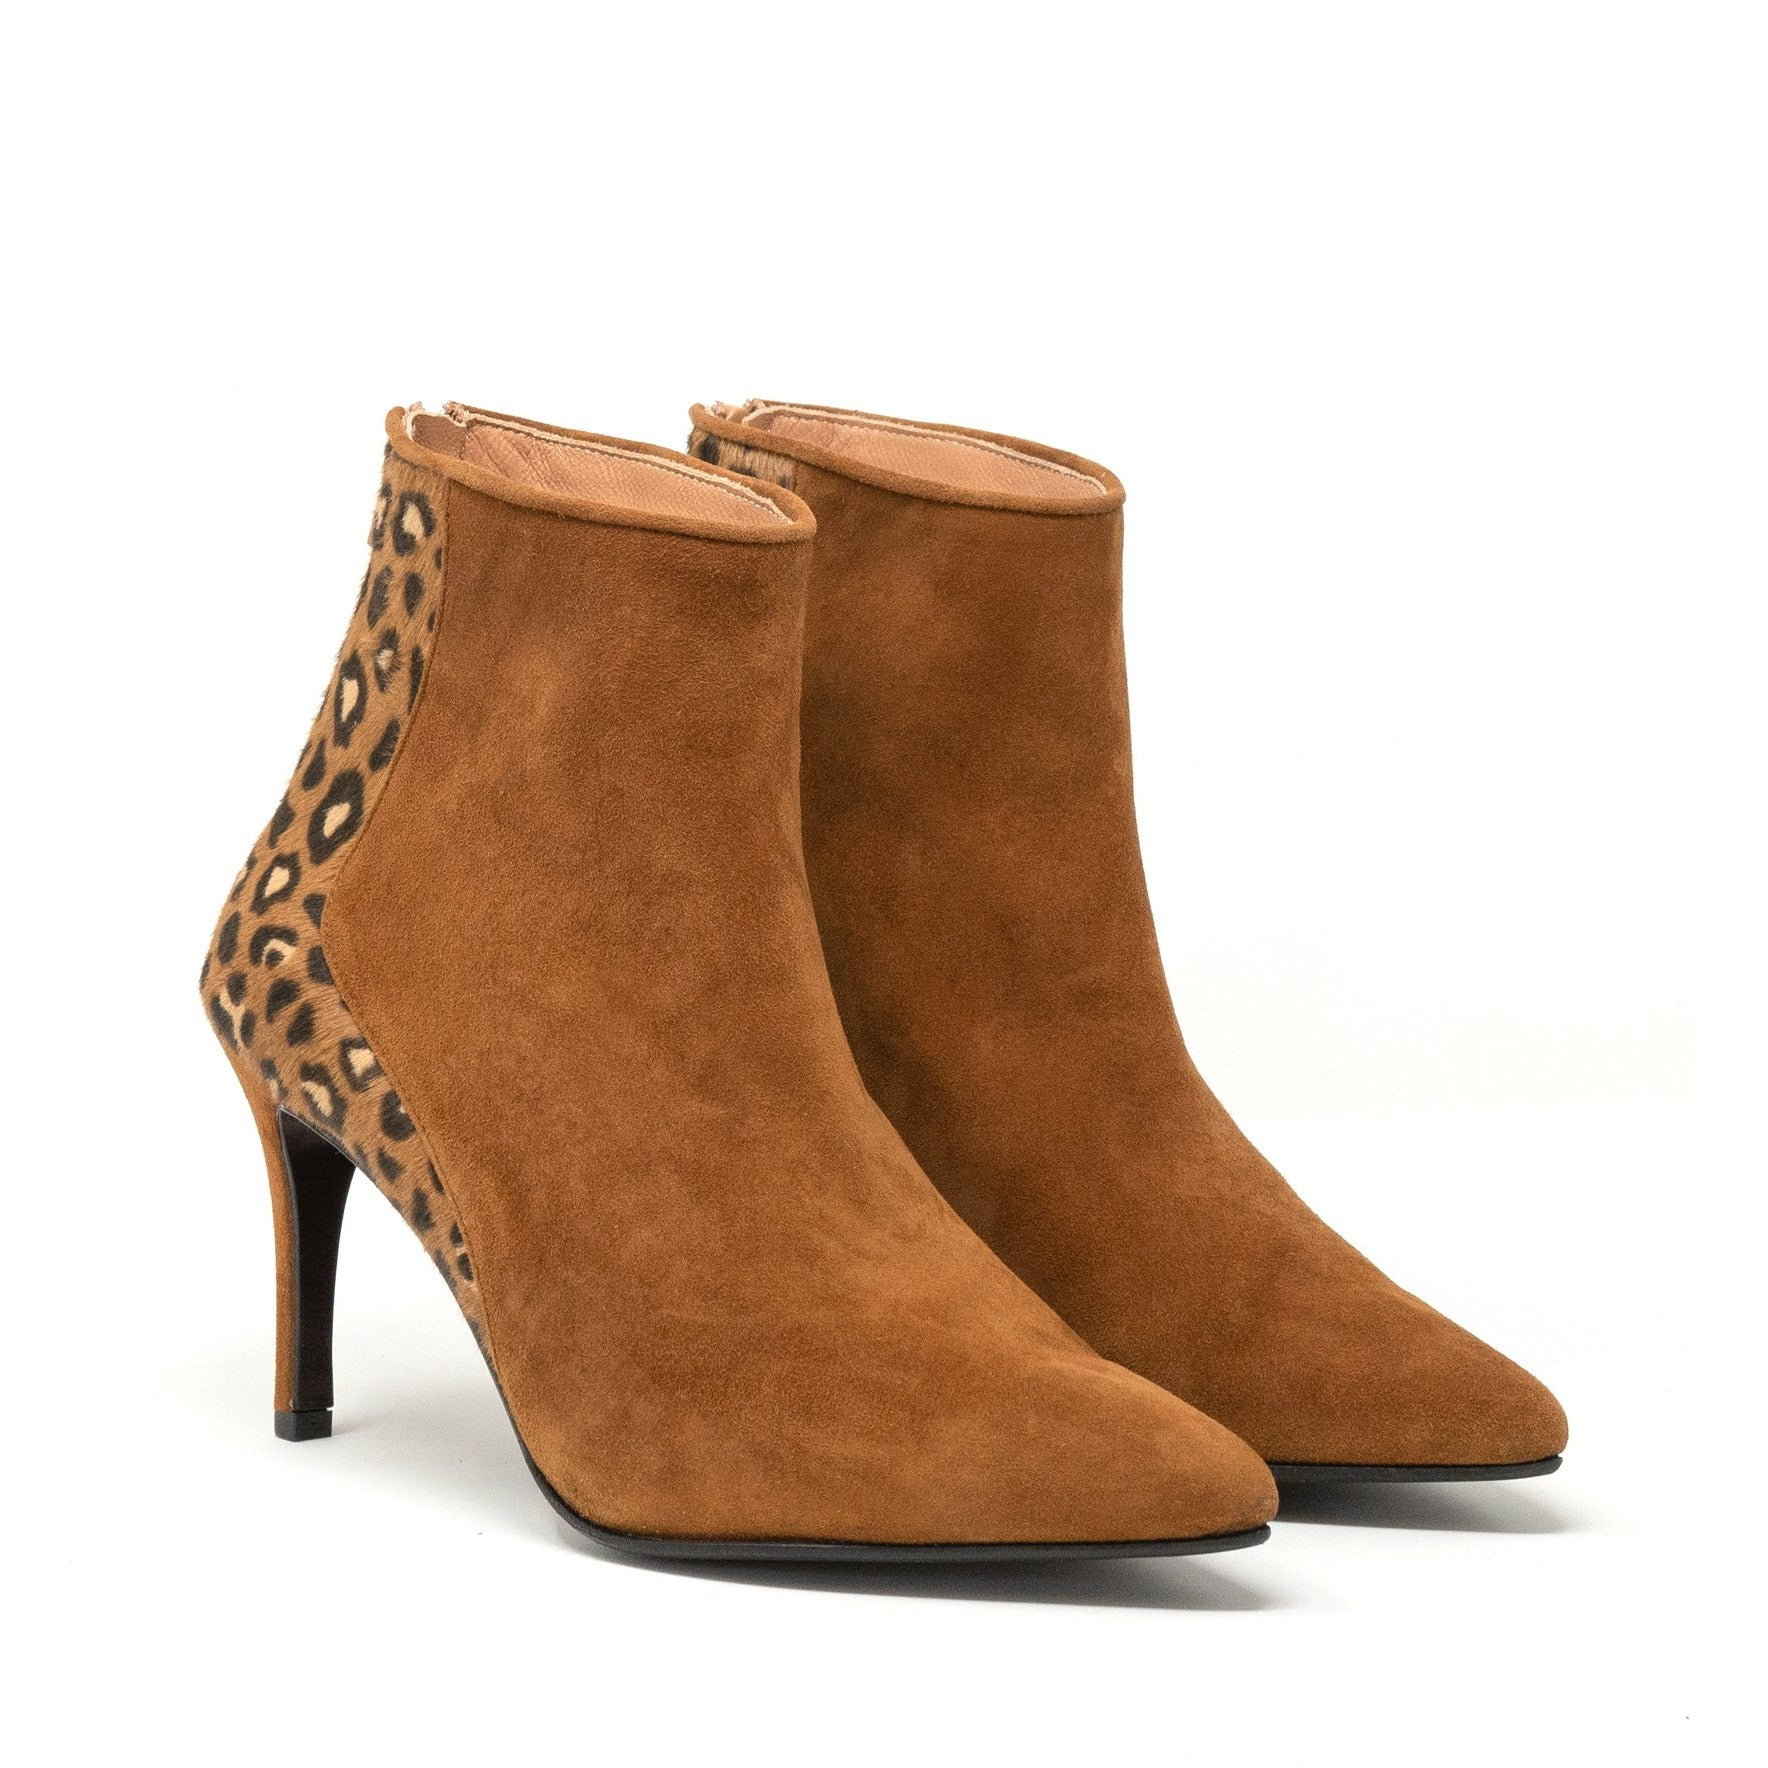 MIL6046 H80 Women Booties - New Fall Winter 2019-2020 Collection